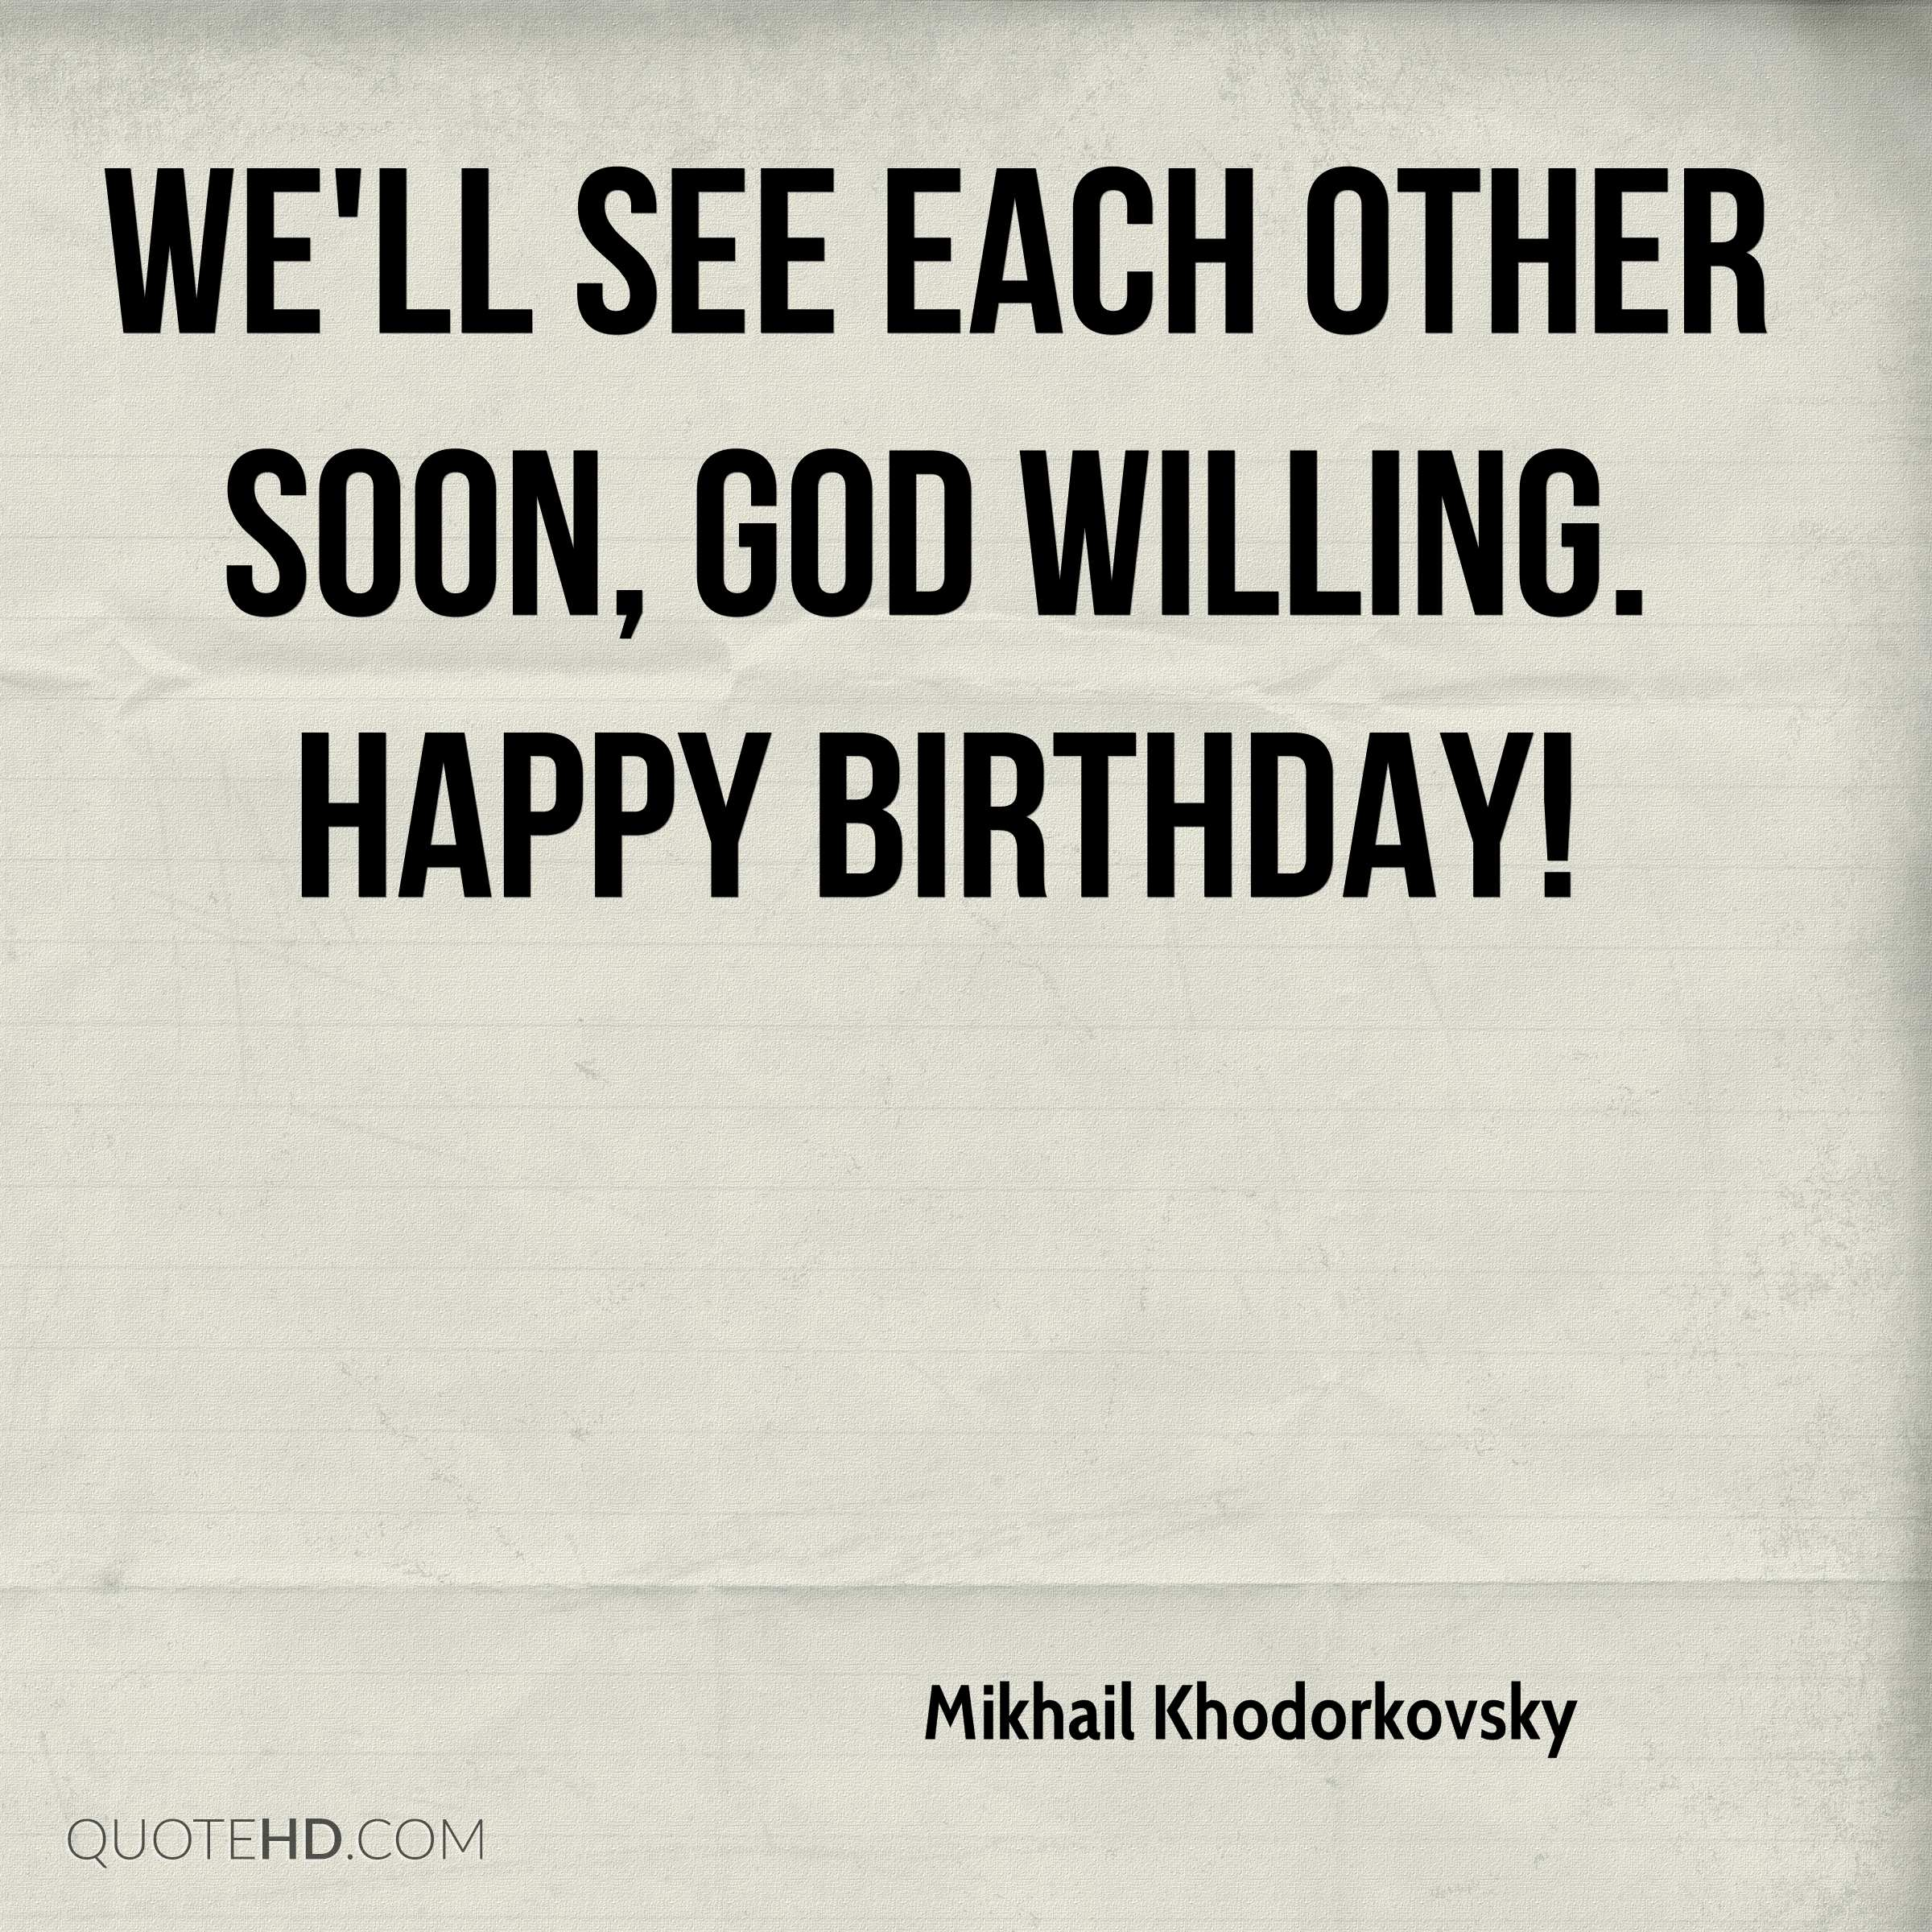 We'll see each other soon, God willing. Happy birthday!